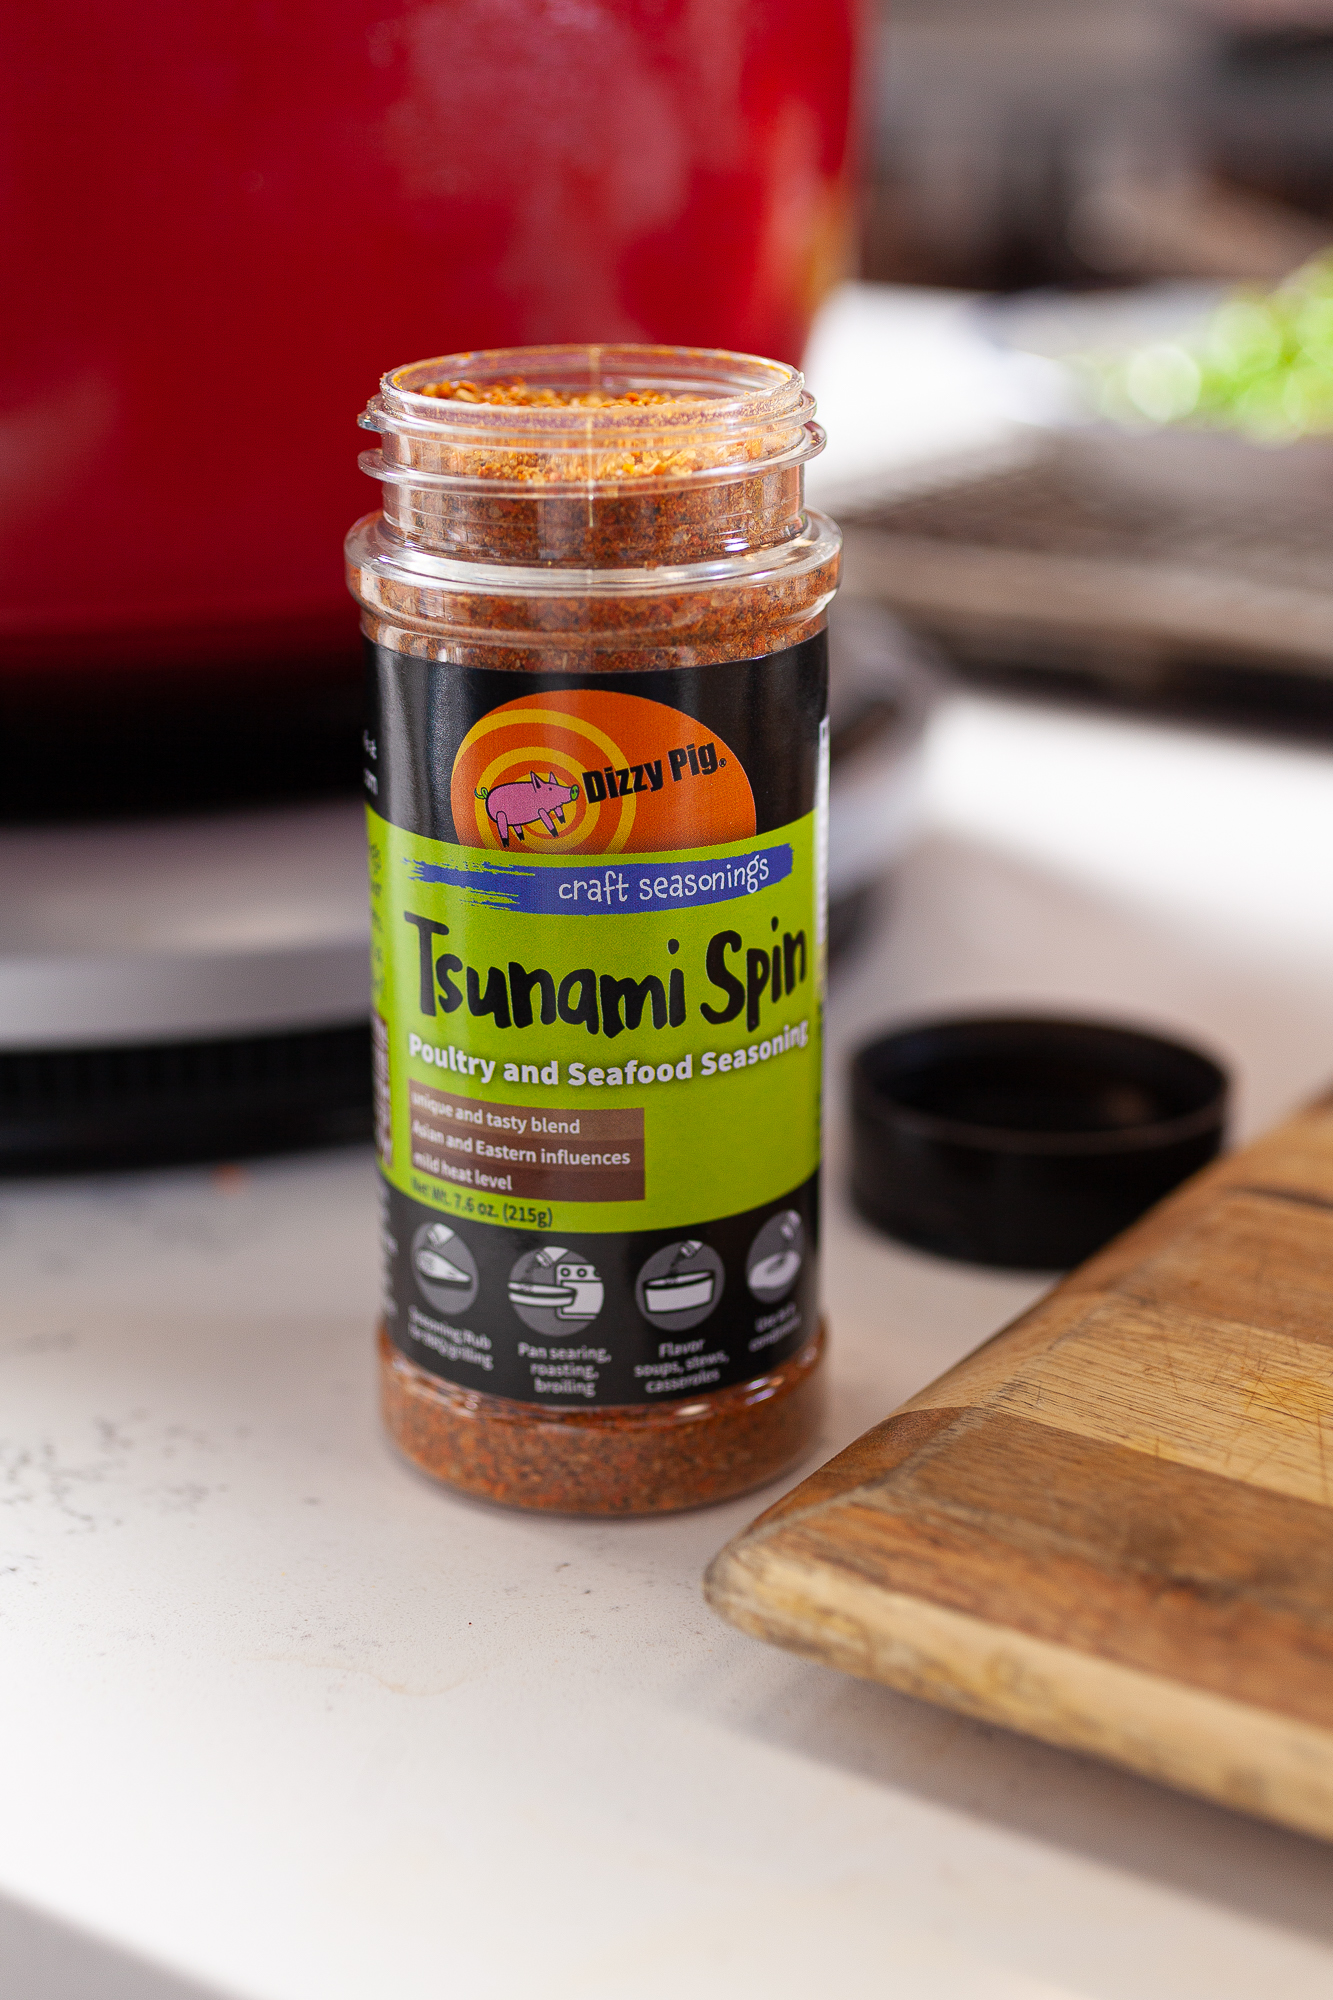 Tsunami Spin: a unique seasoning with Asian flavors that is sweet and savory!